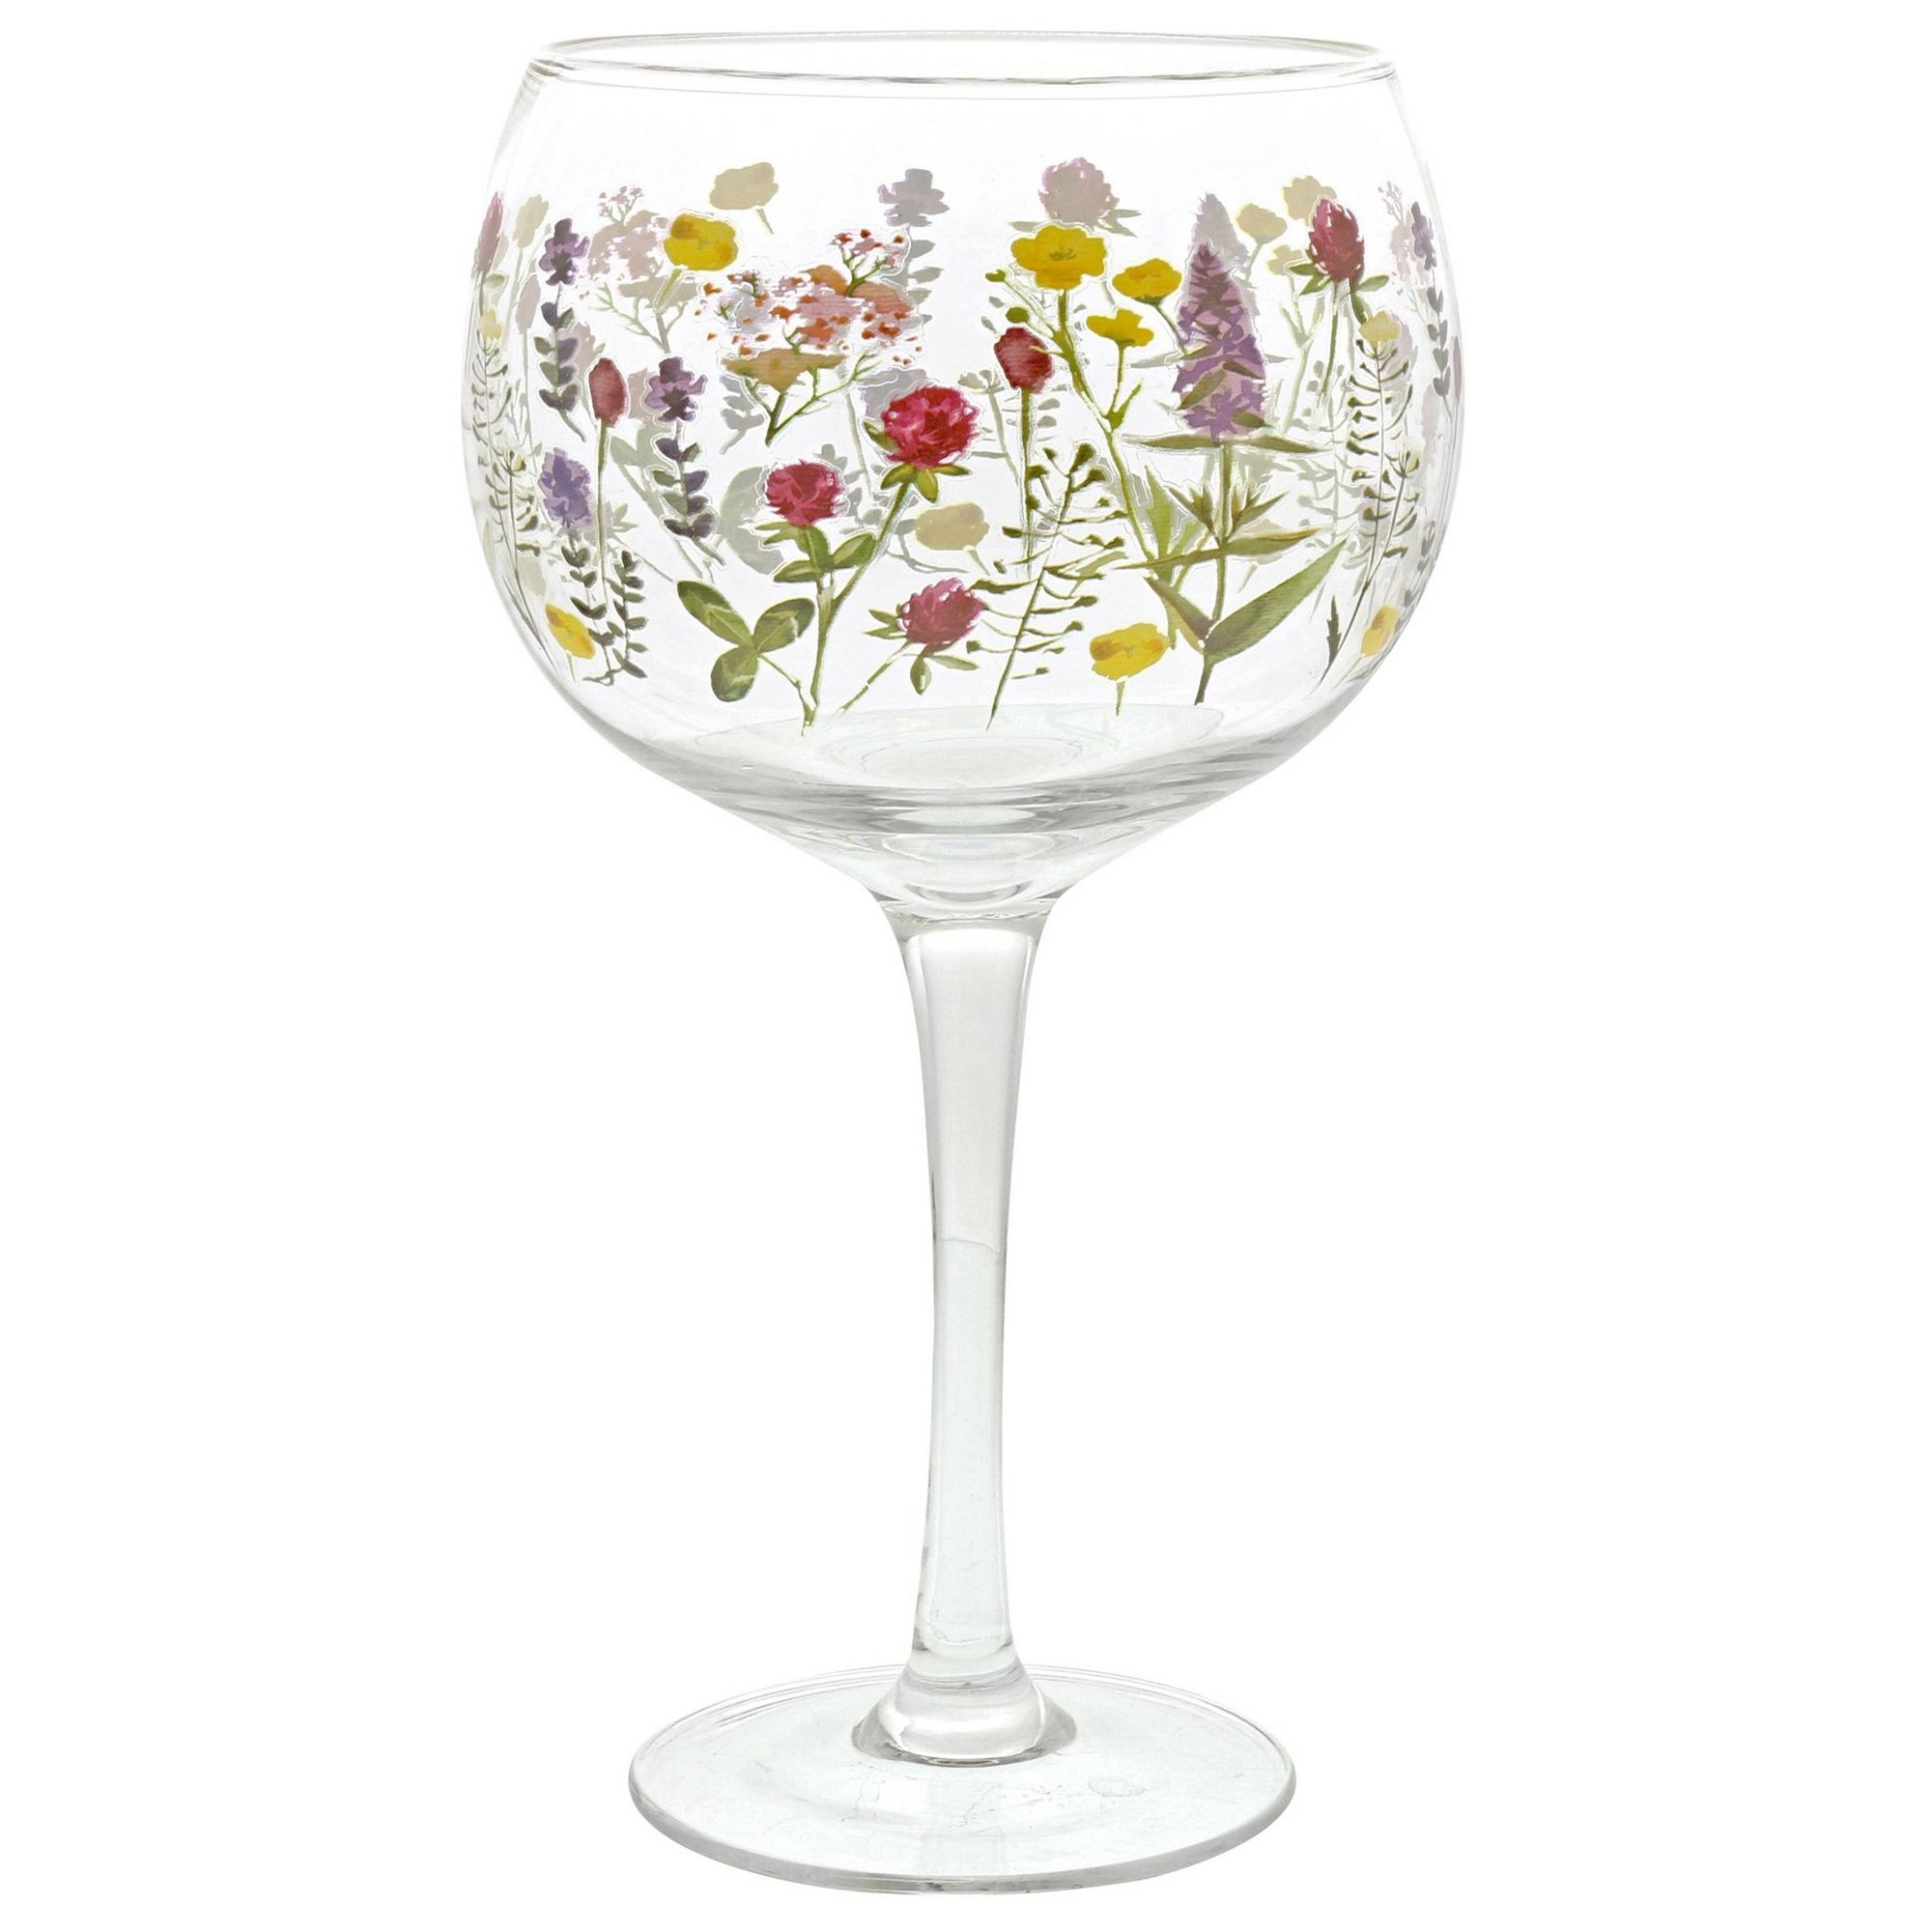 Image of Ginology Wildflowers Gin Glass